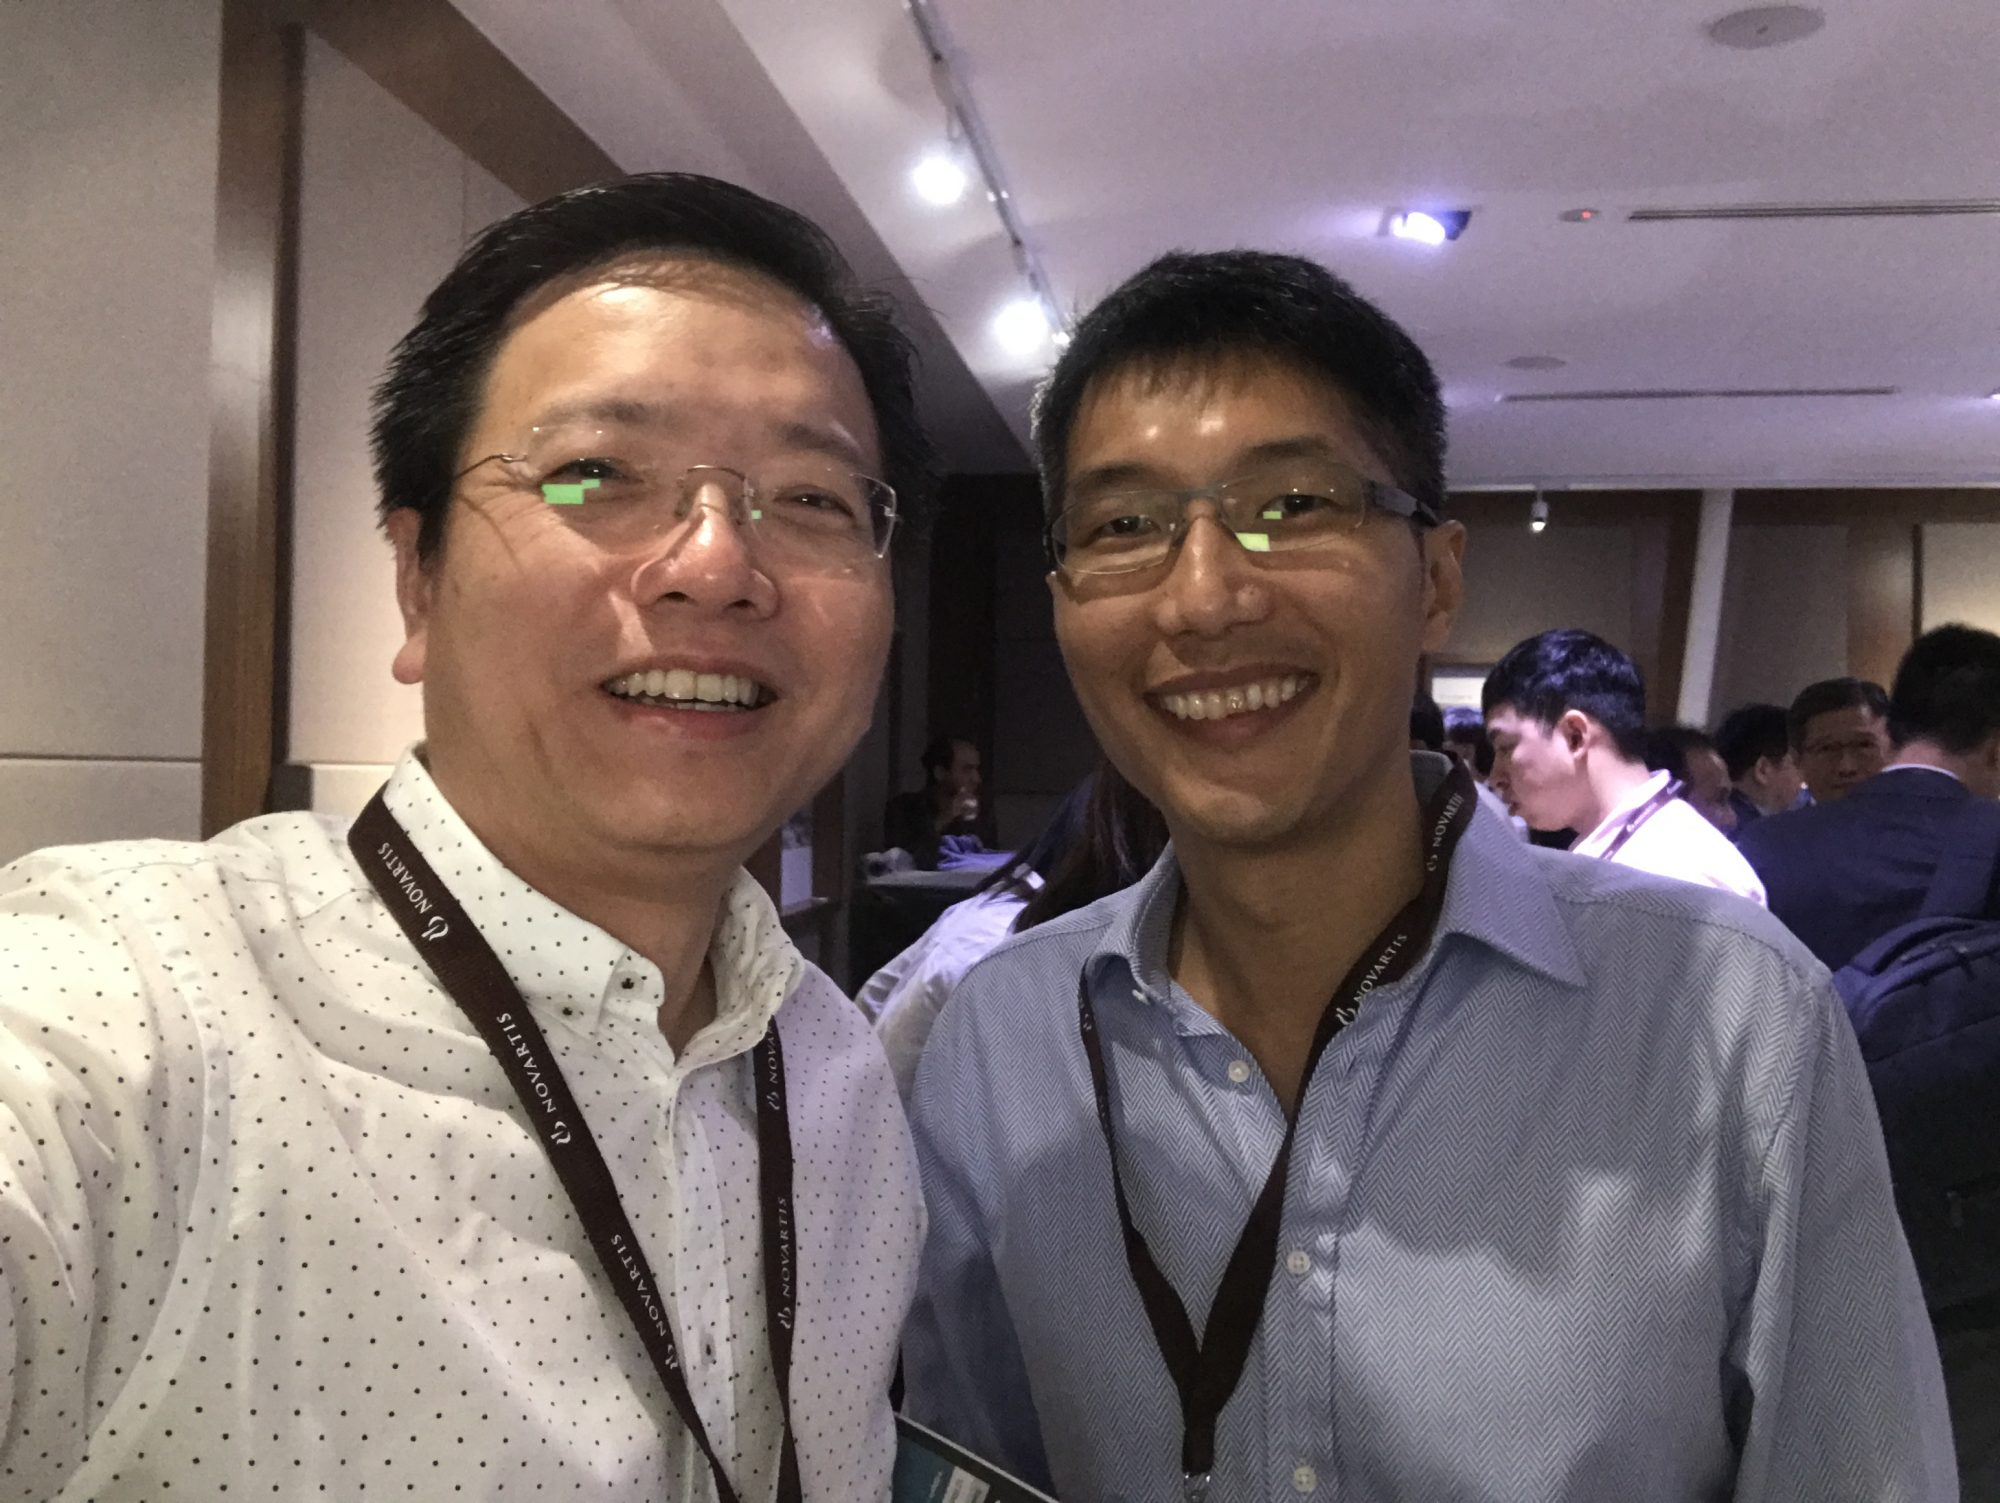 (L-R) Dr Au Eong Kah Guan with fellow vitreoretinal surgeon Dr Alan Ang from Penang, Malaysia.